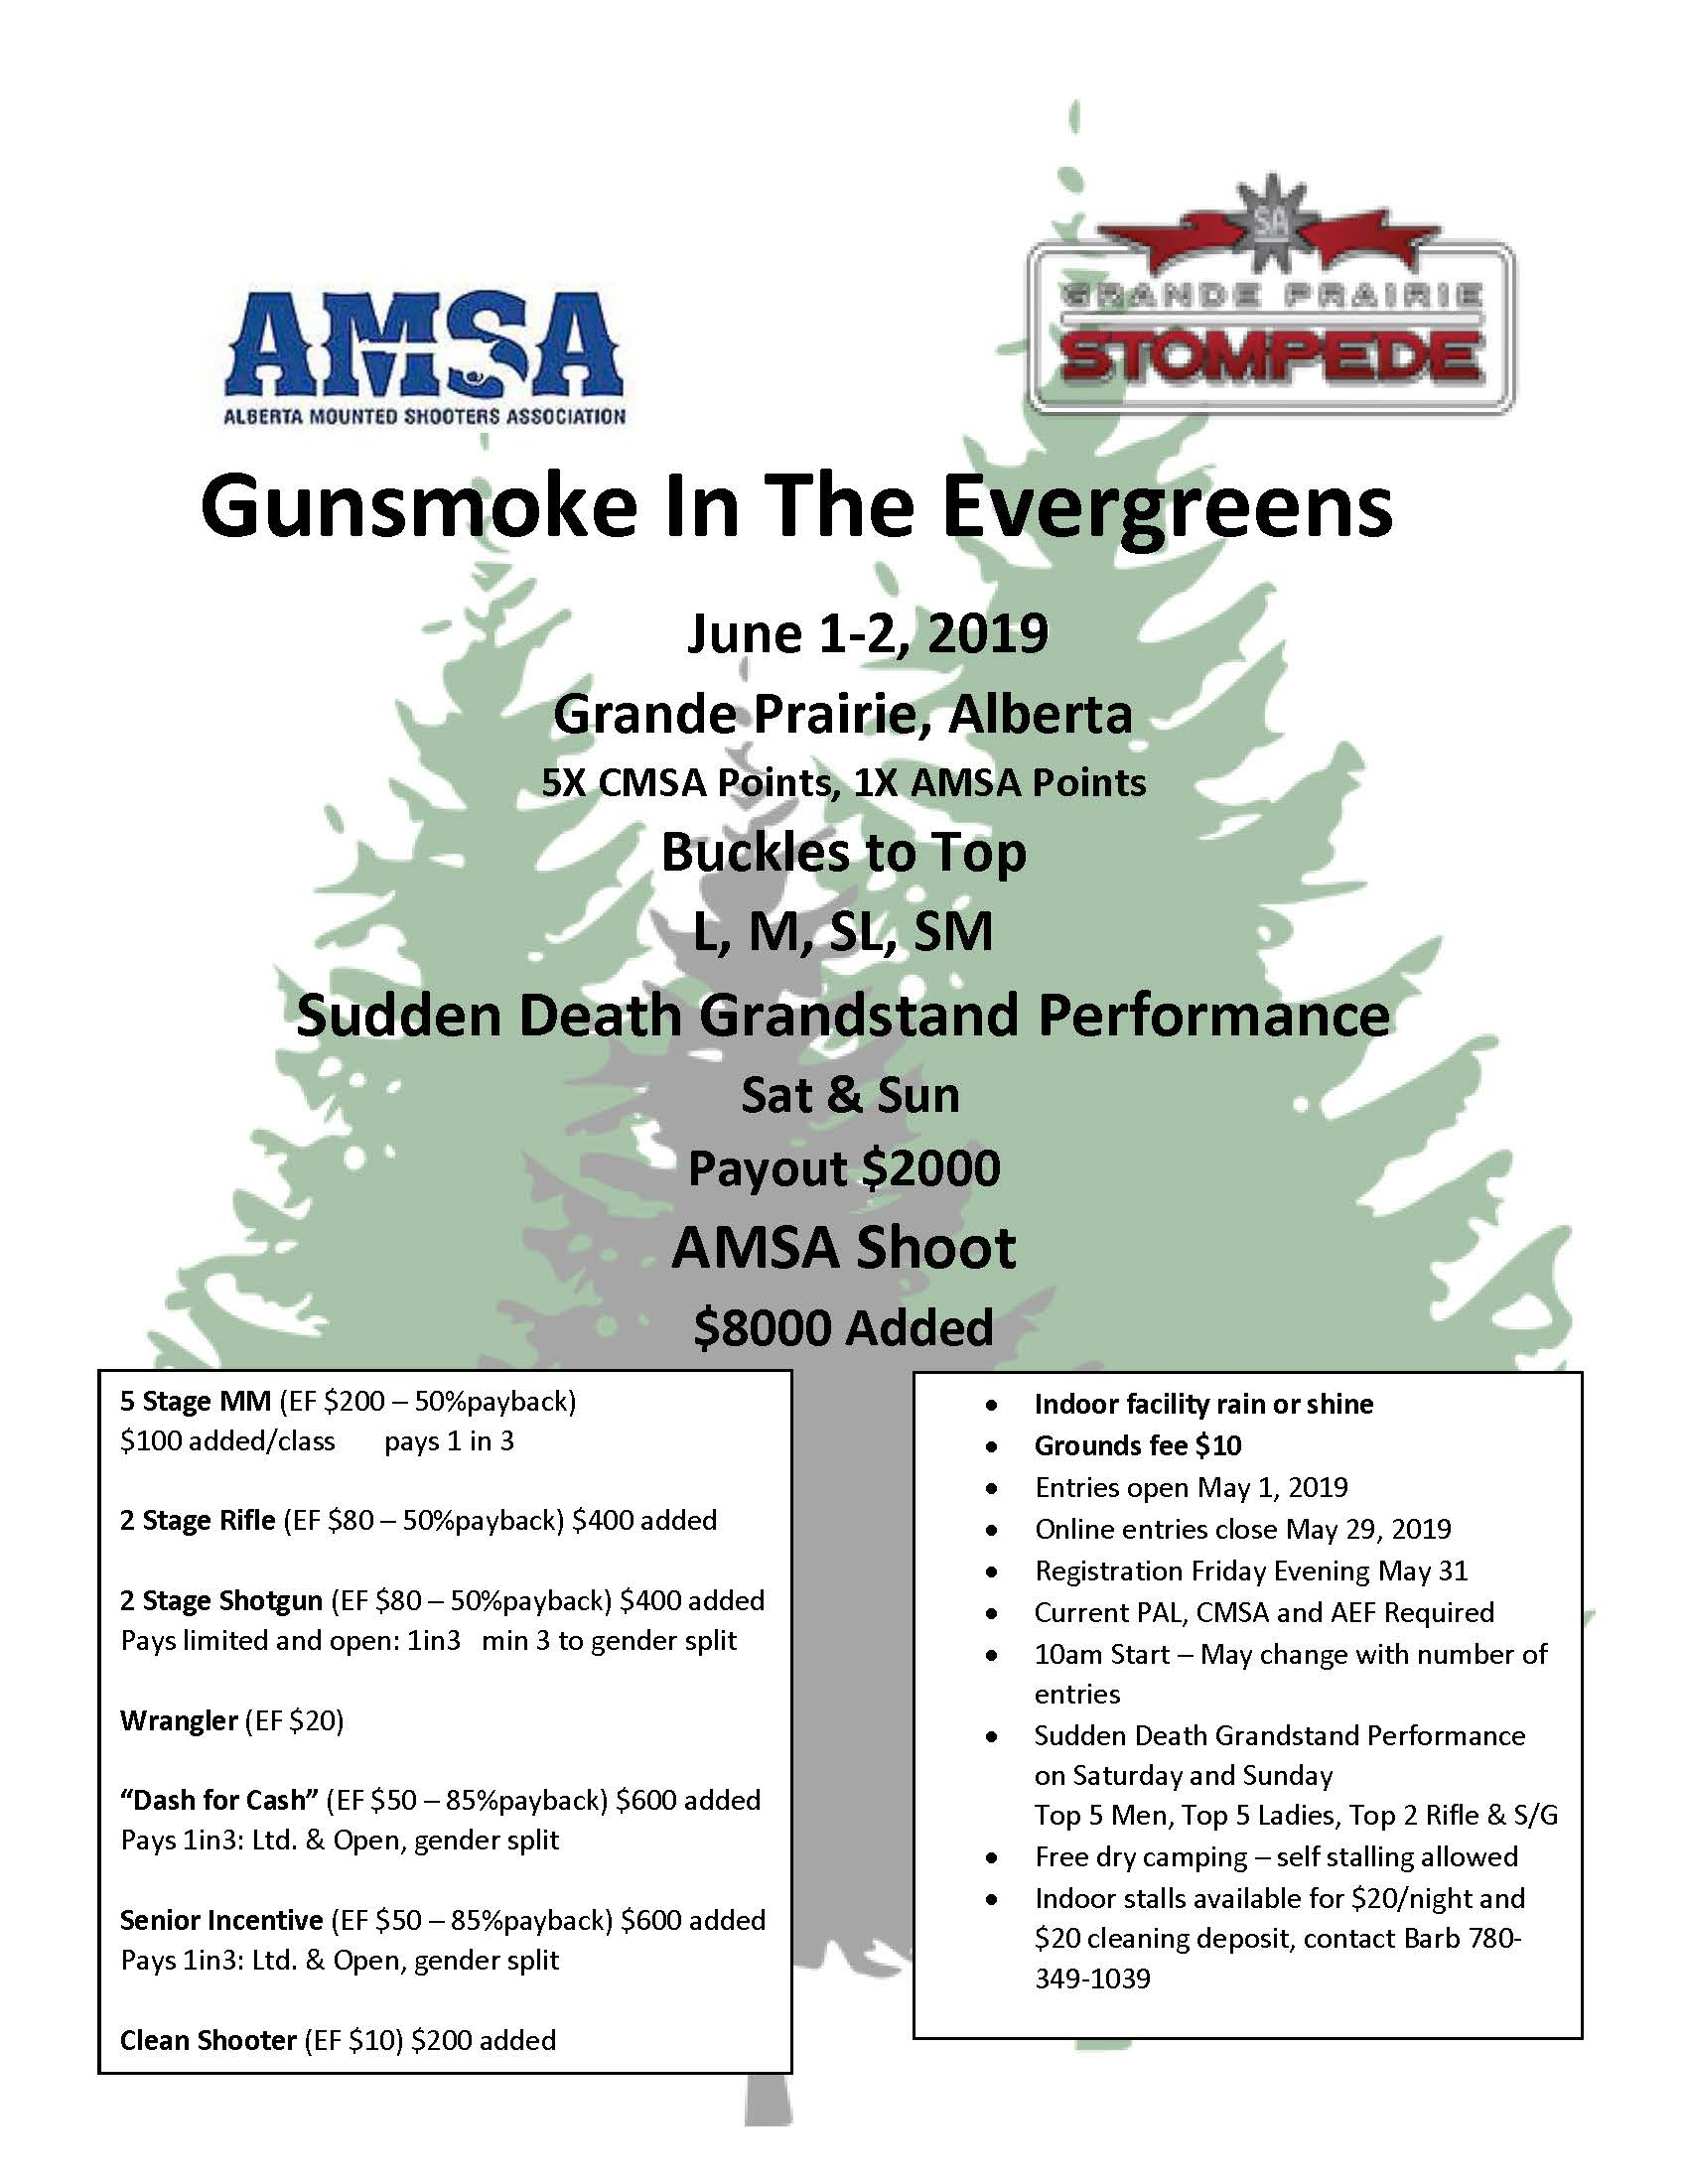 Gunsmoke in the Evergreens